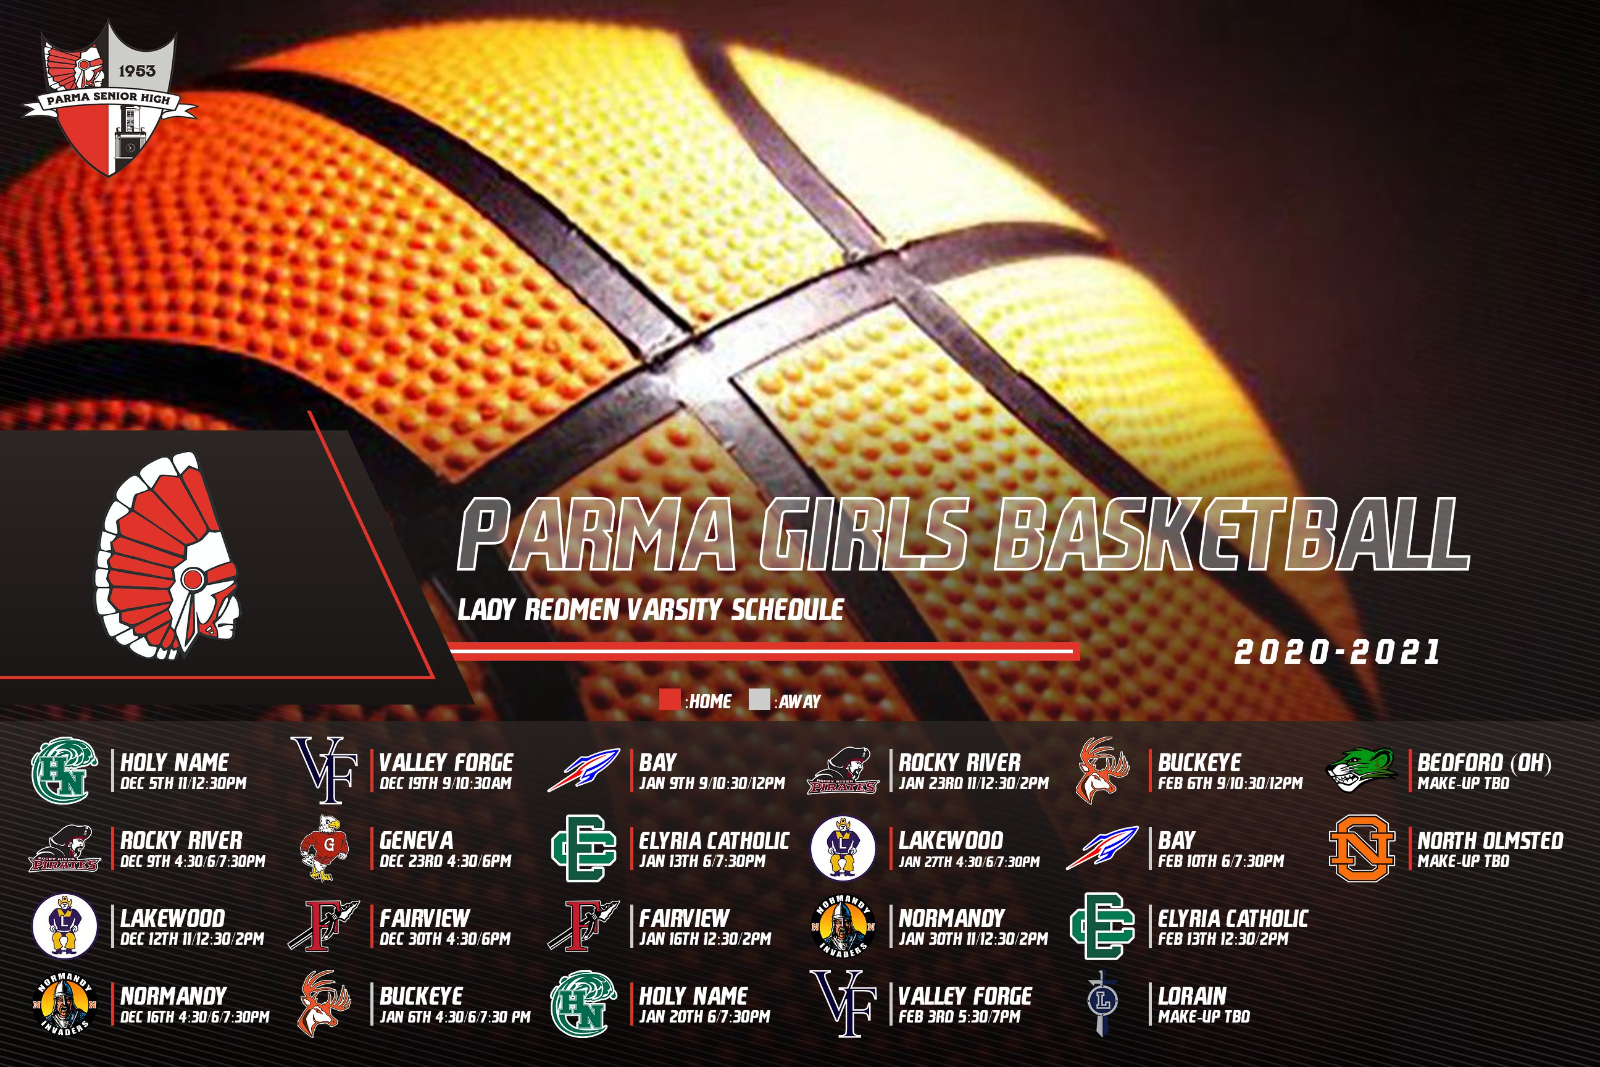 2020-21 Parma Girls Basketball Game Schedule